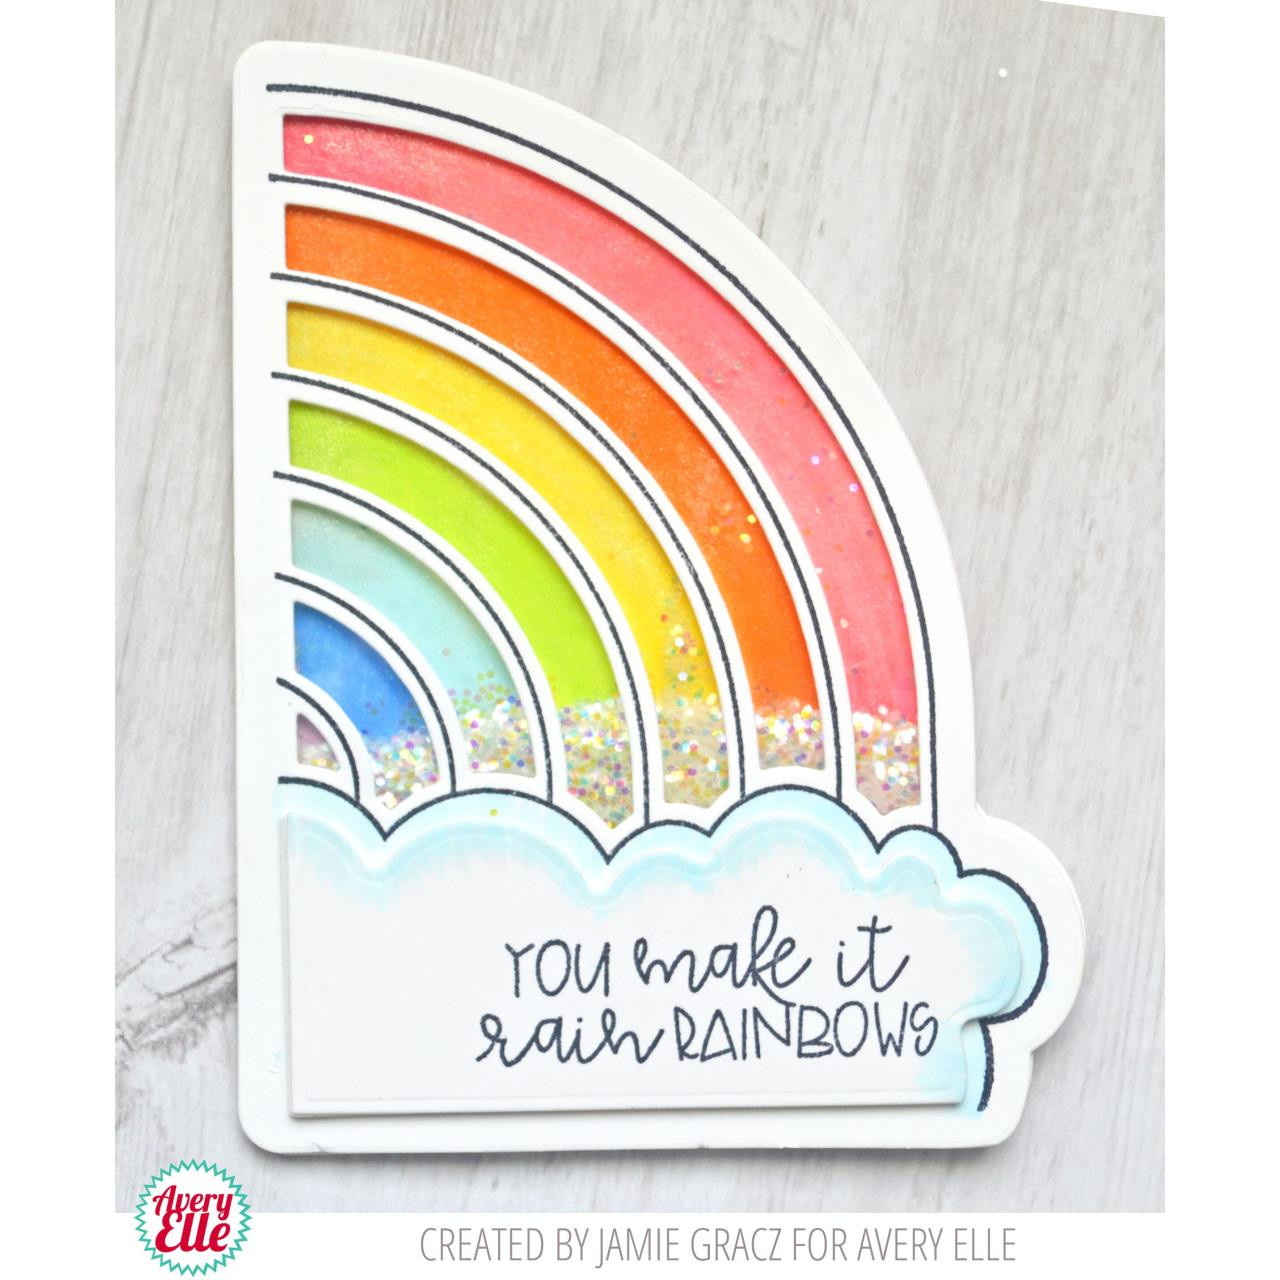 Rainbows, Avery Elle Clear Stamps - 811568027589